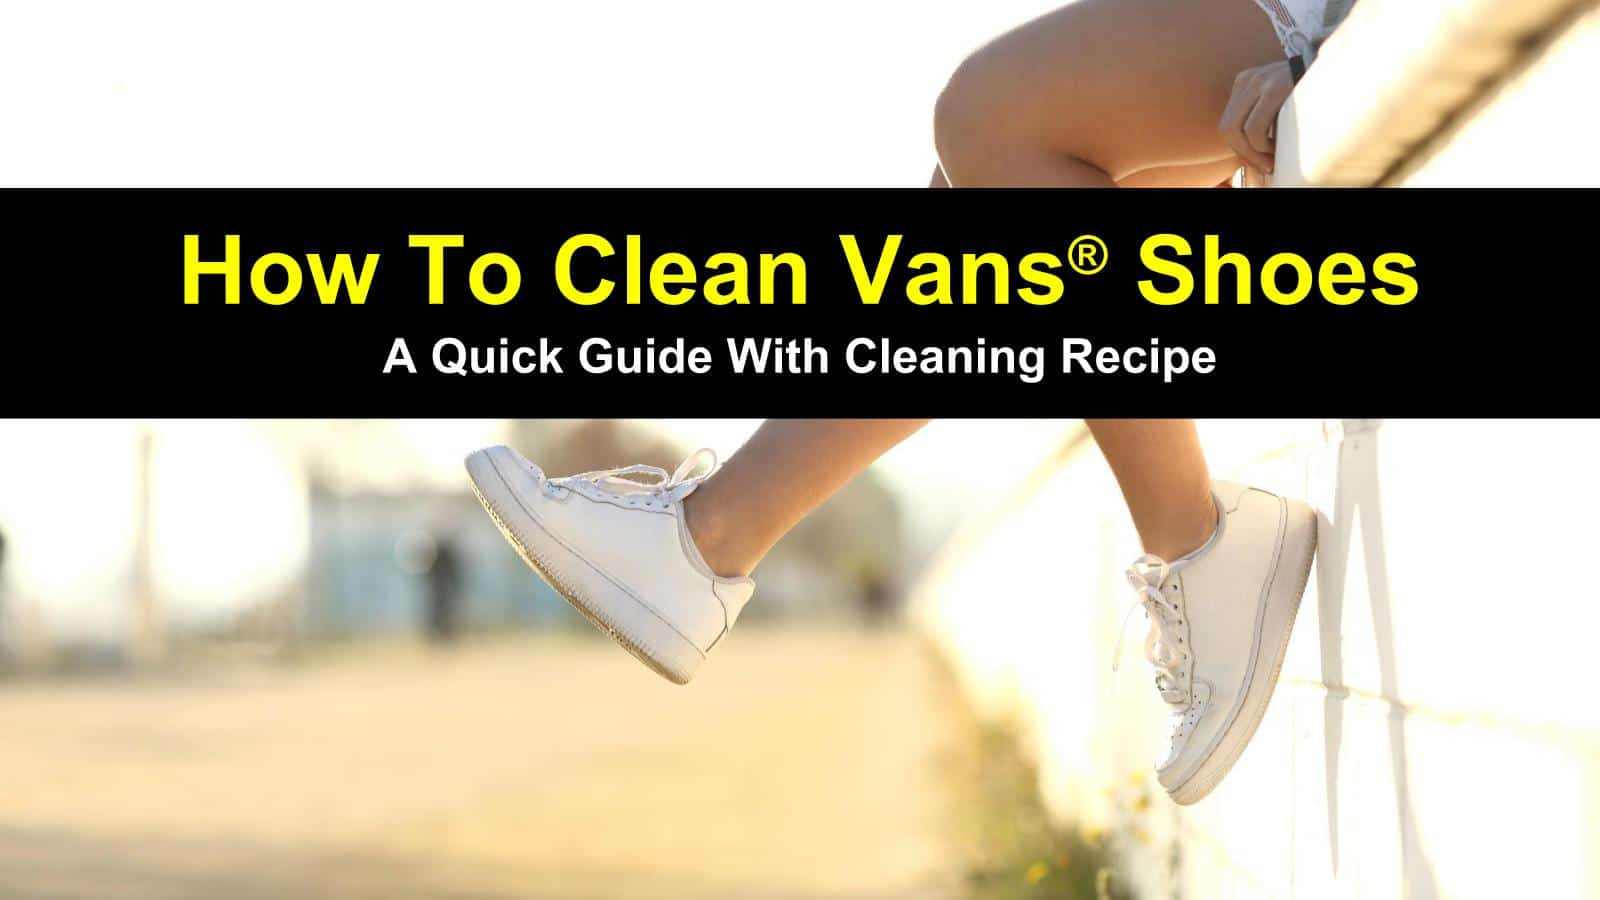 How To Clean Vans Shoes